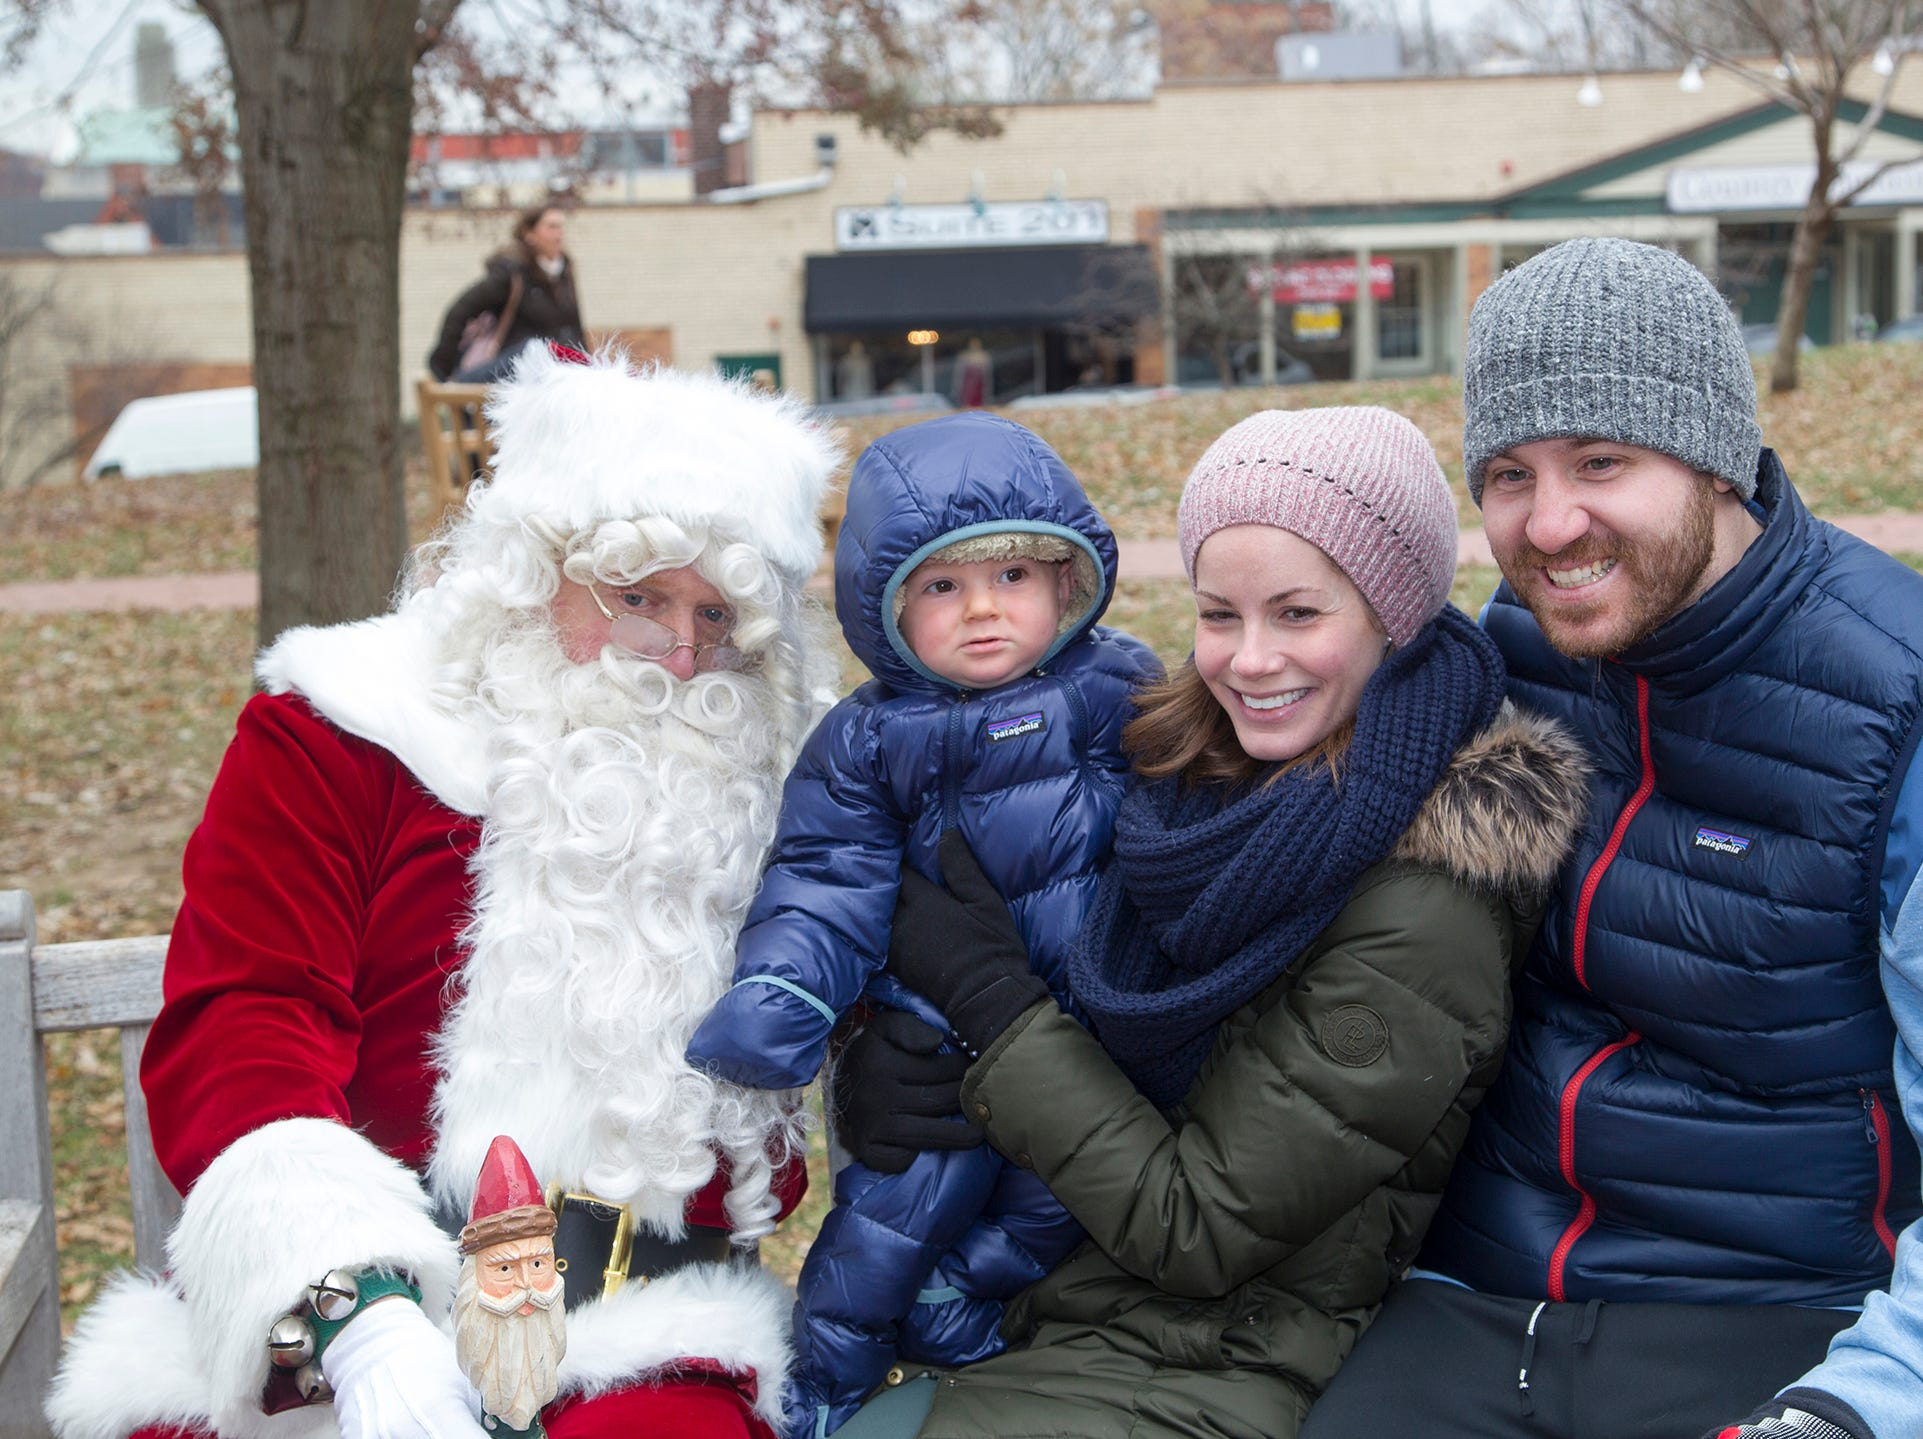 The DeSantis Family with Santa. The Ridgewood Guild sponsors Winter Fest at Van Neste Park in Ridgewood. 11/24/2018